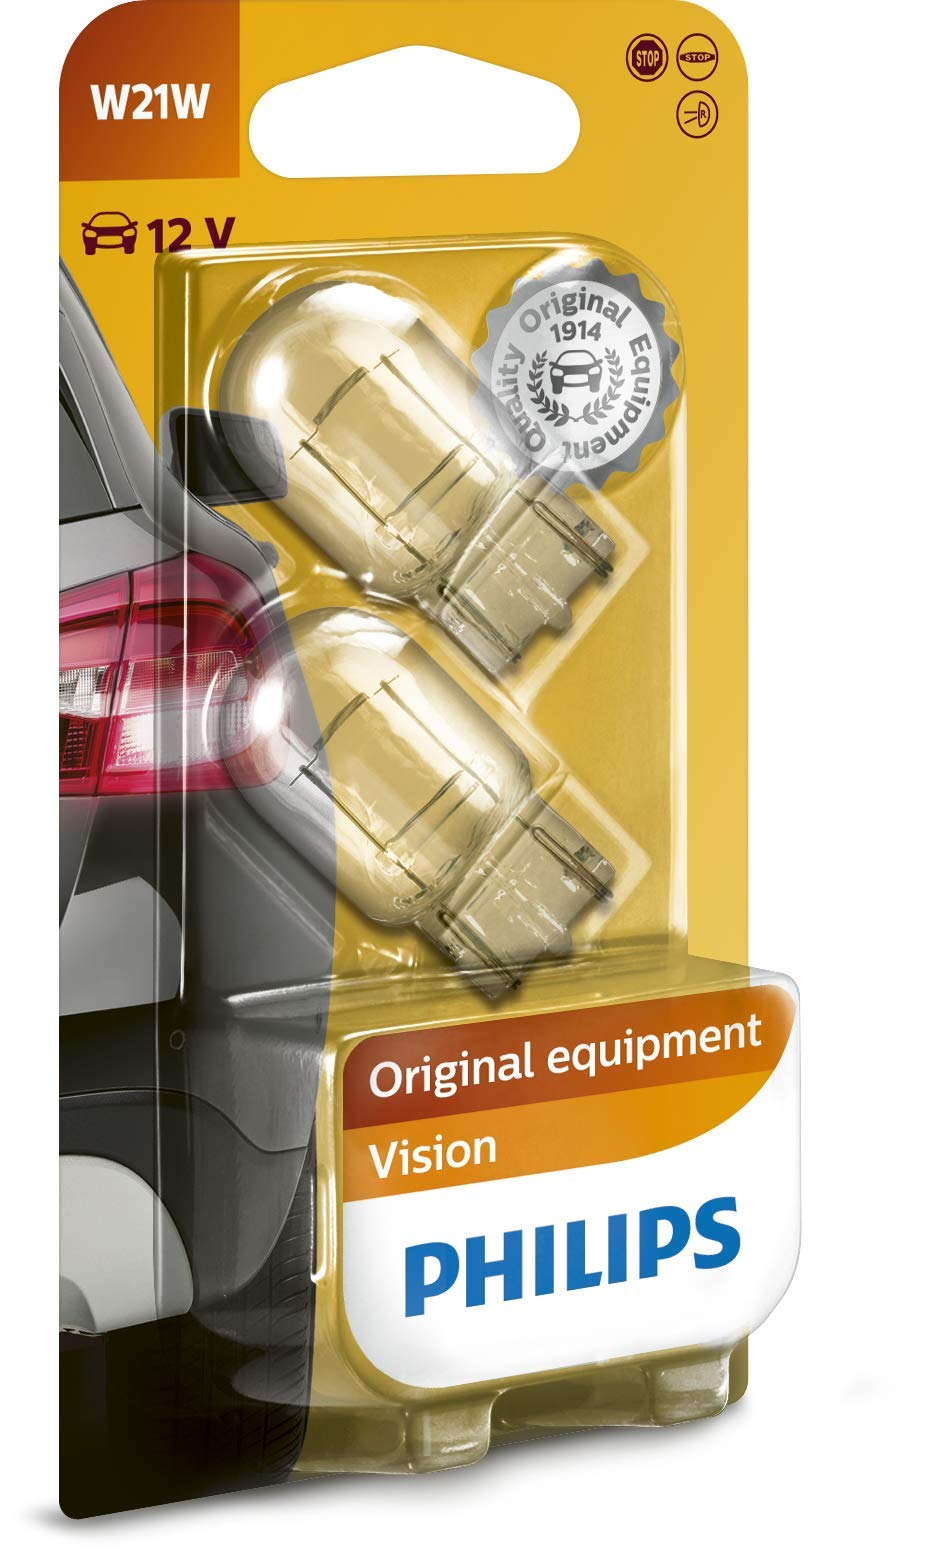 Philips 12065B2 Glassockellampe Vision, W21W von Philips automotive lighting